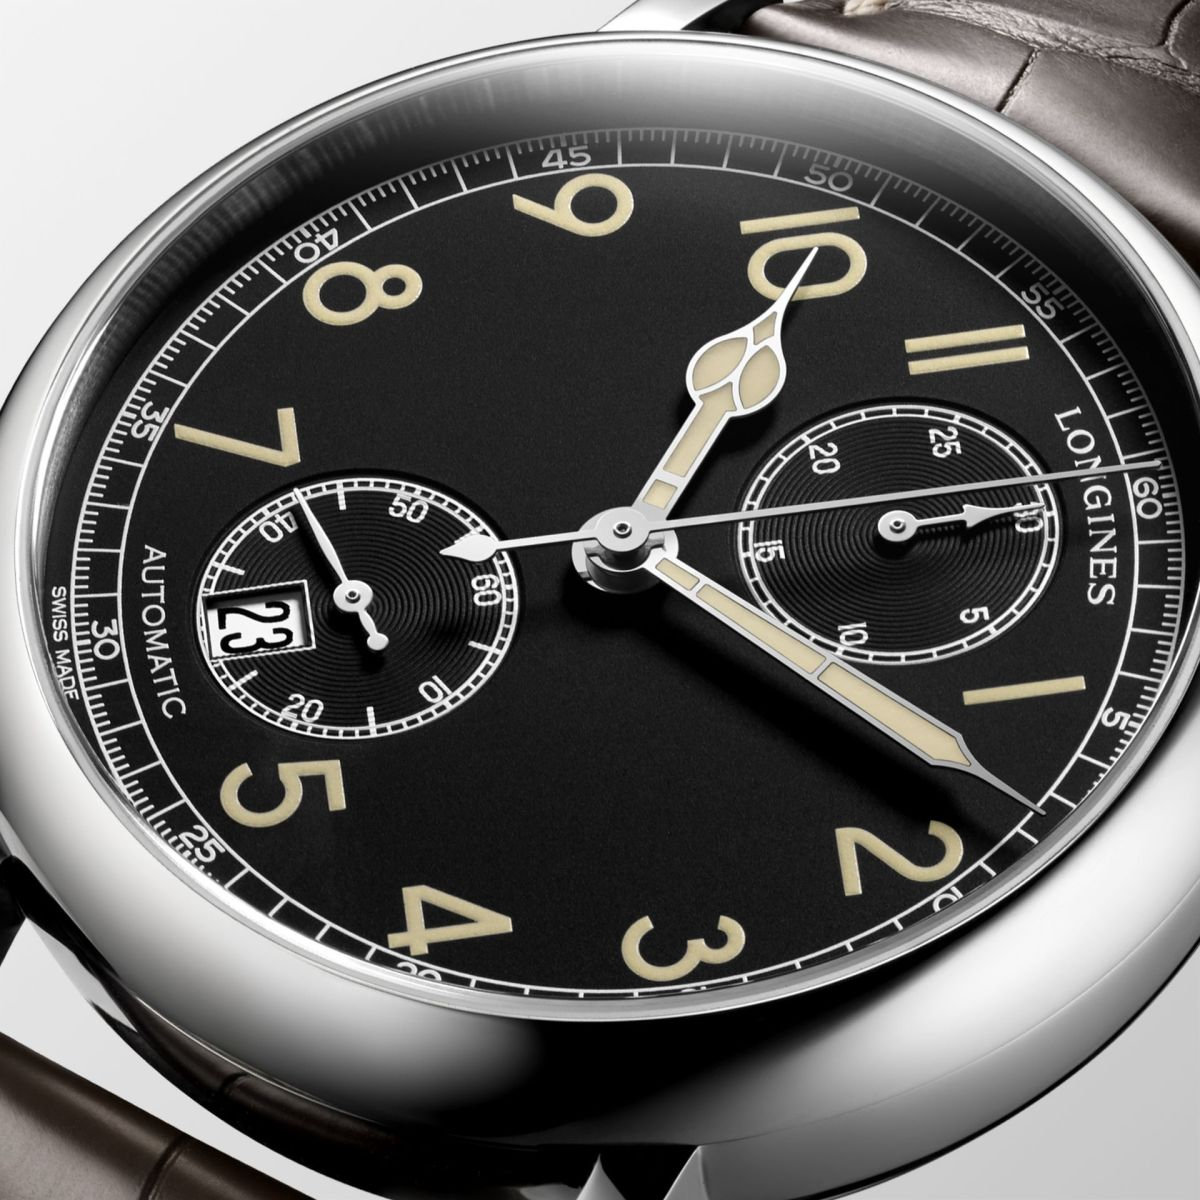 Longines-Avigation-Watch-Type-A-7-1935-4.jpg